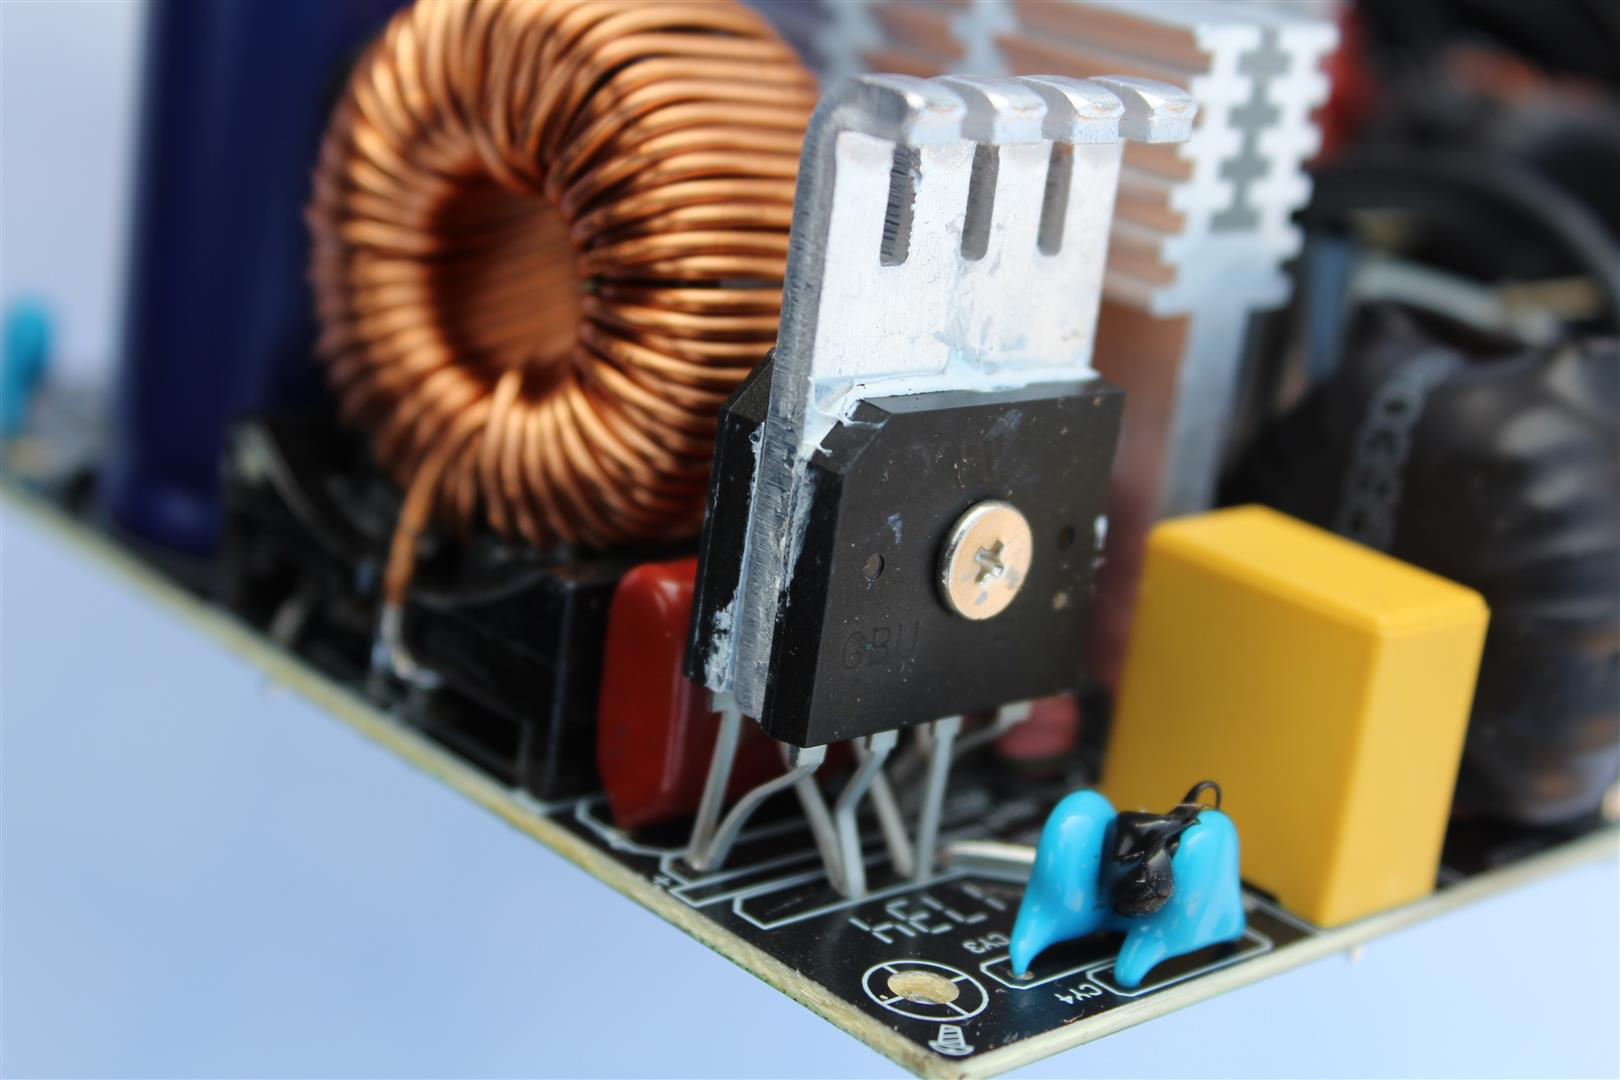 Cooler Master Masterwatt 750 Power Supply Review Pc Tek Reviews Computer Diagram The Build Quality Of Board Is Very High